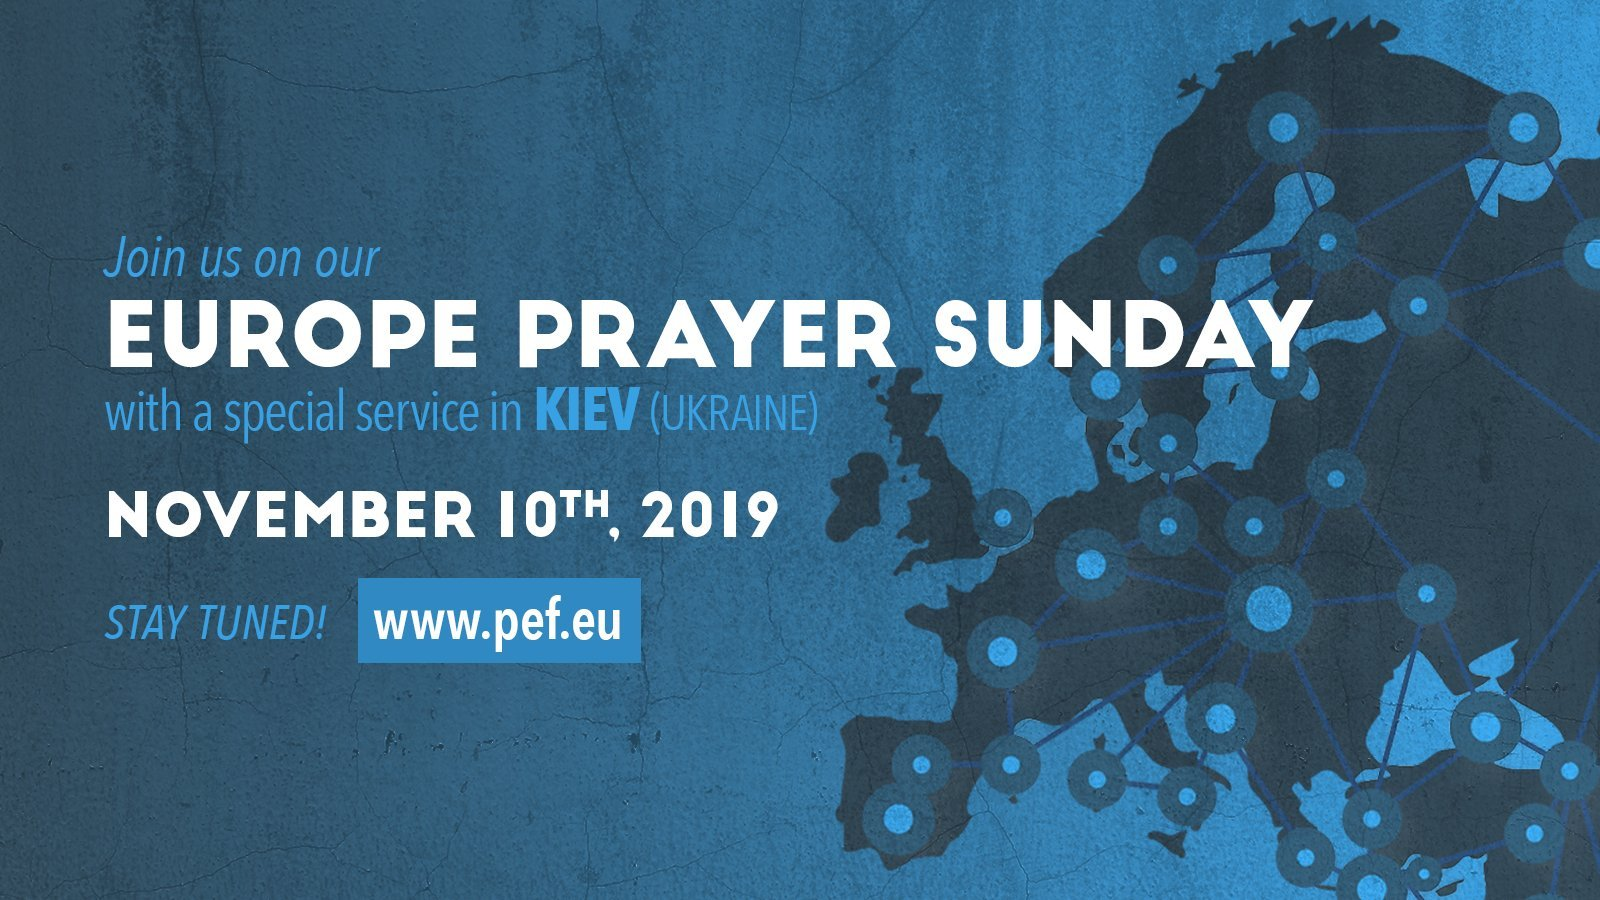 Europe Prayer Sunday